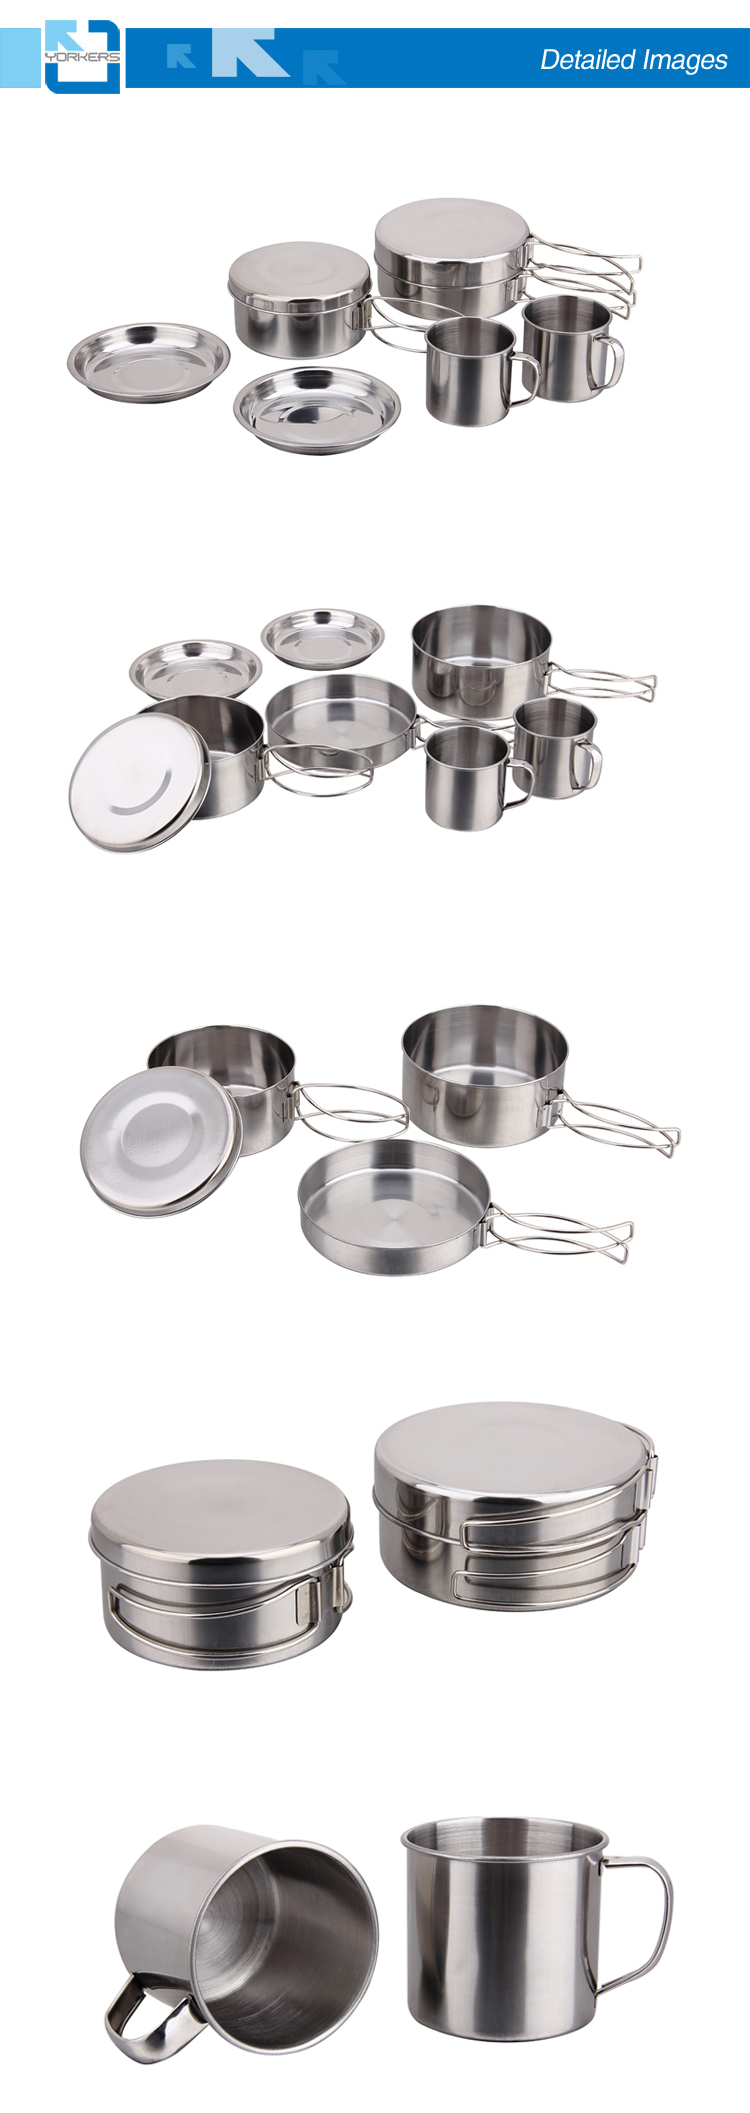 stainless Steel Outdoor Cooking Pot with Bowls for Camping